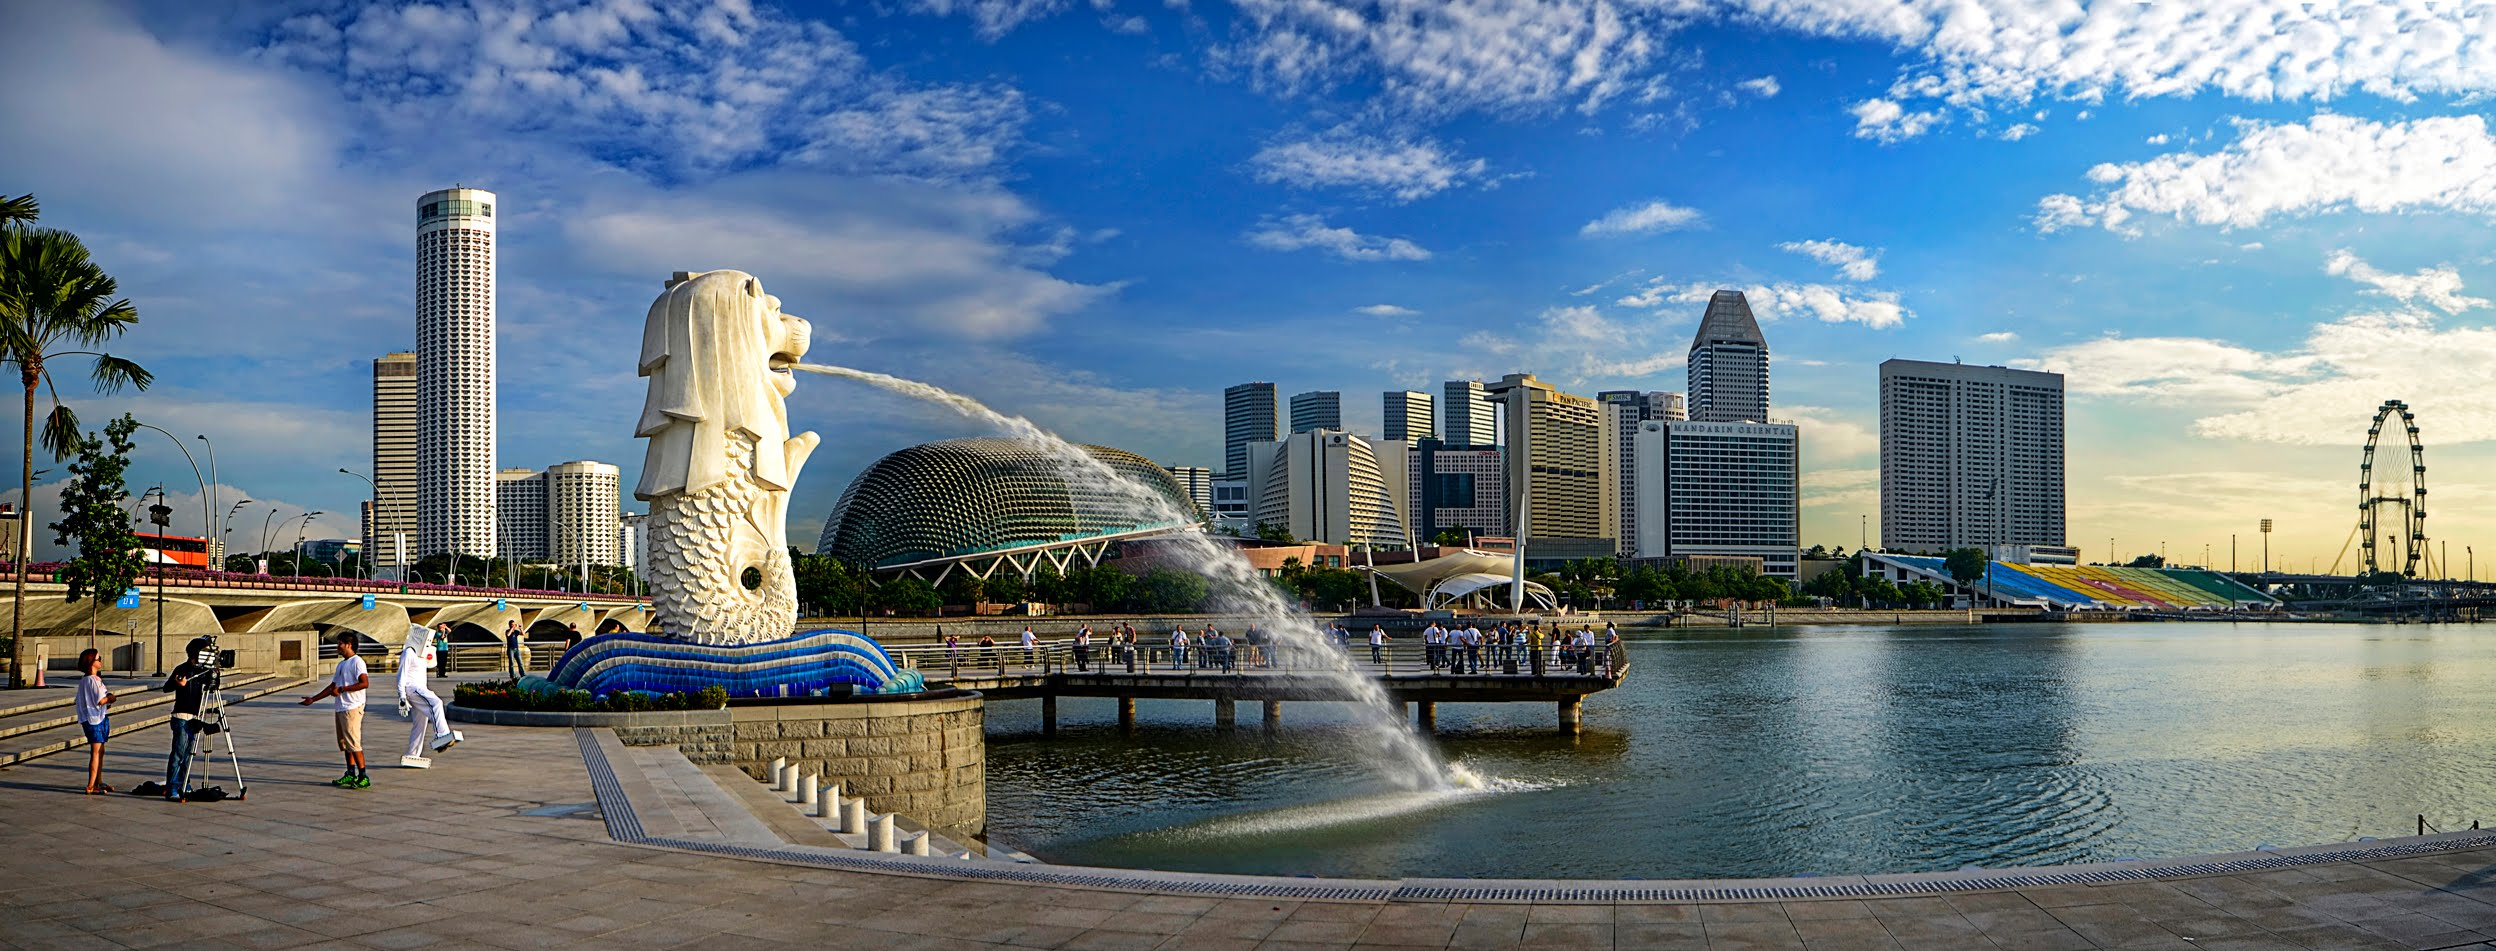 Picture of Singapore Merlion